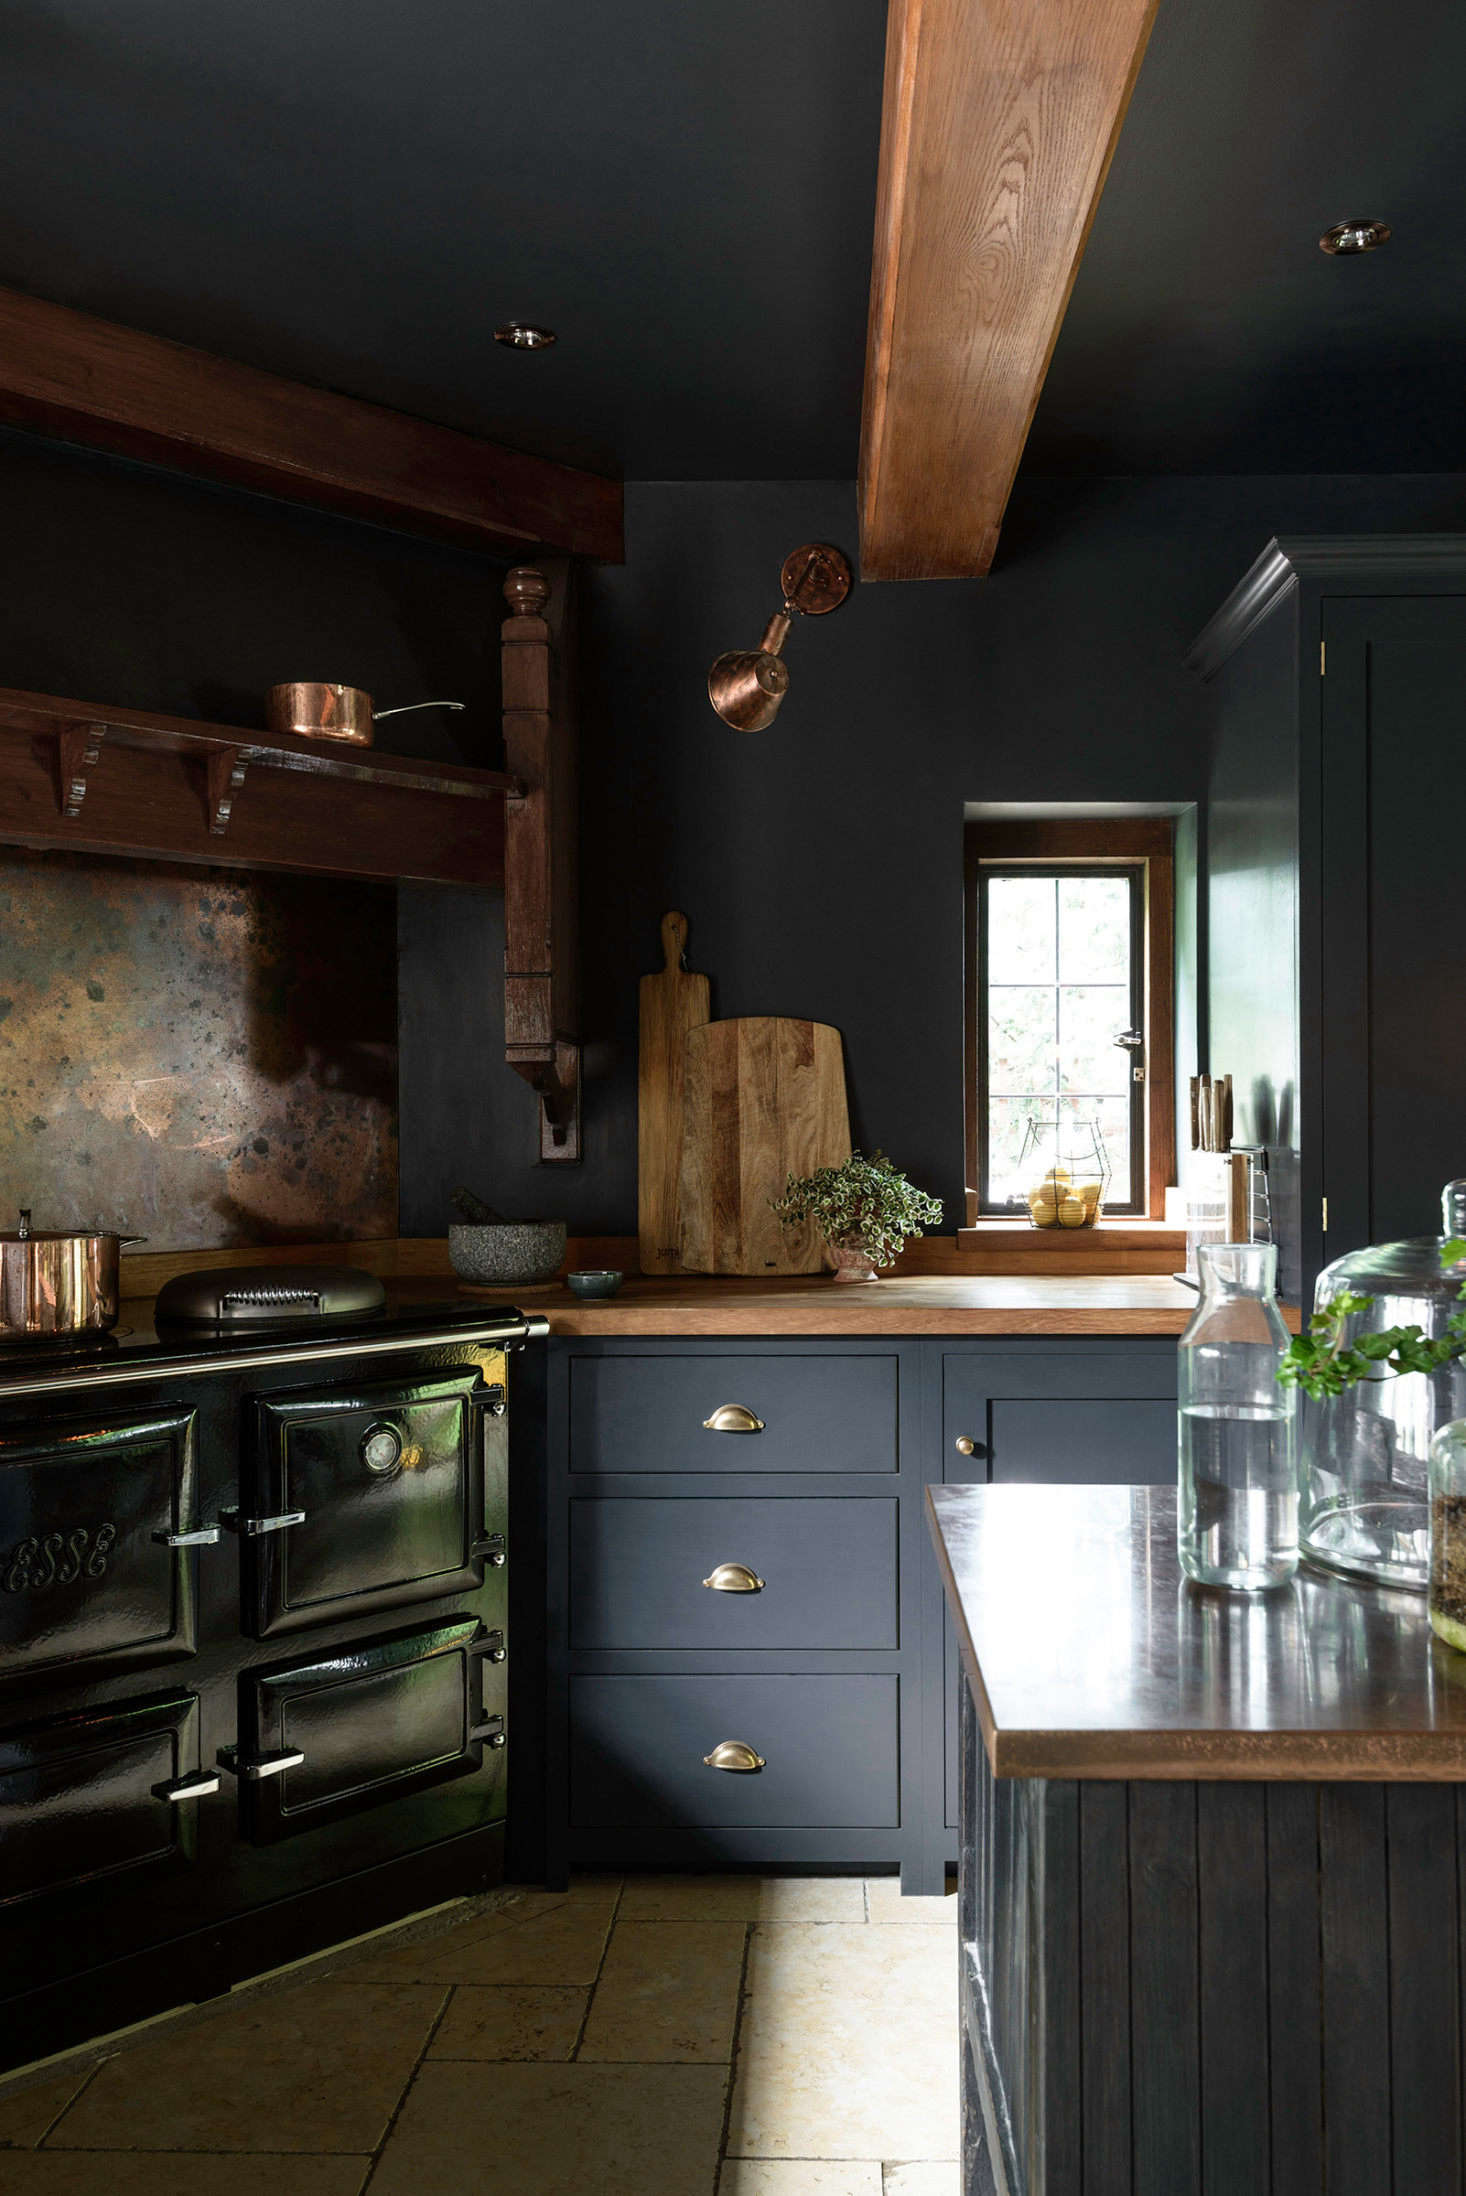 Most of the kitchen is newly built, but the wood fireplace mantel over the cast iron Esse stove is original to the home. The patinated copper backsplash and copper worktop on the island are warm, glowing counterpoints to the matte dark paint on the cabinets.